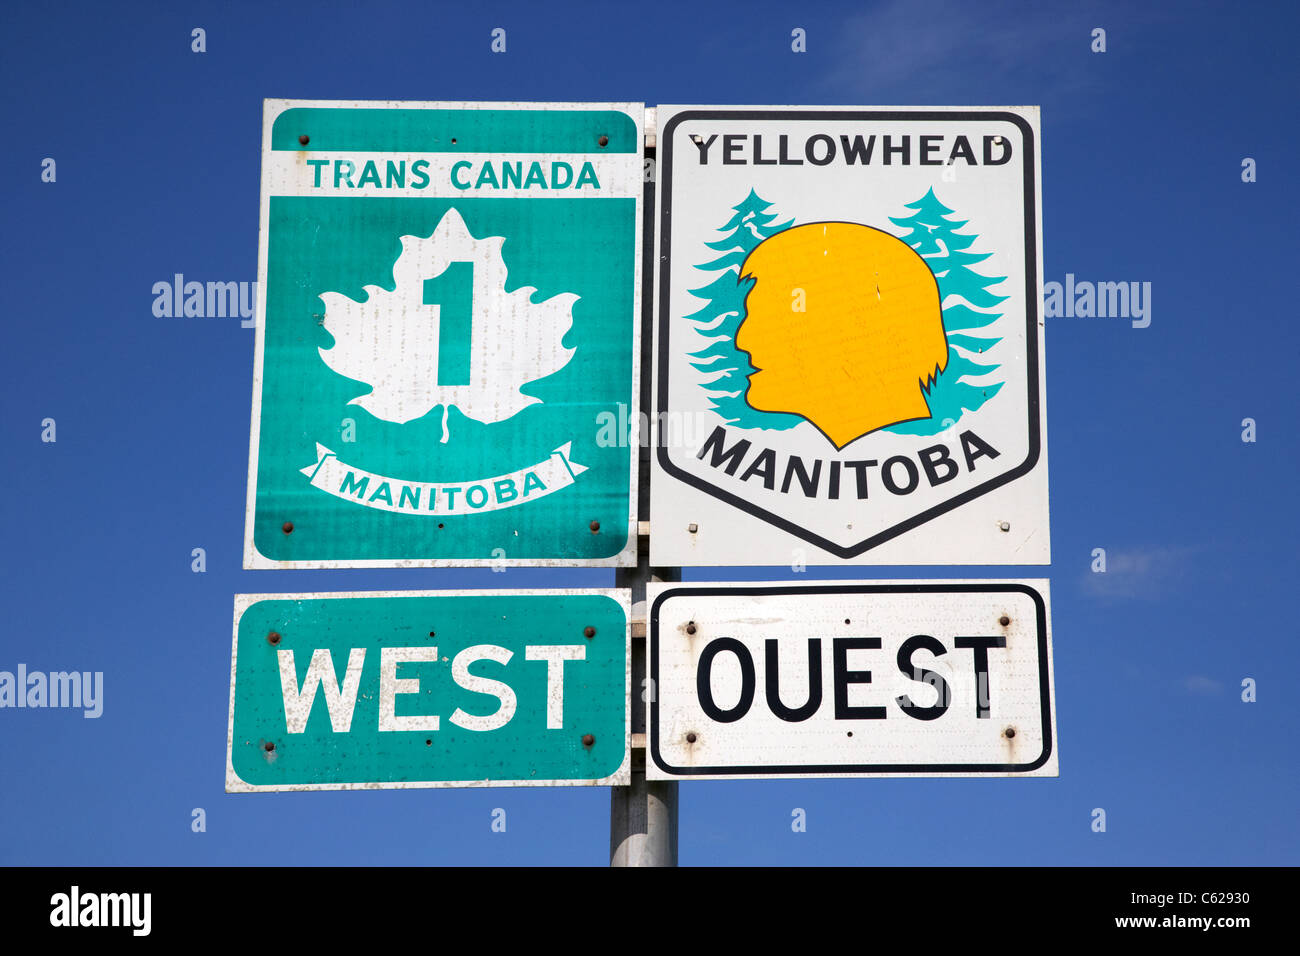 signposts for trans canada highway 1 and yellowhead route in manitoba canada - Stock Image